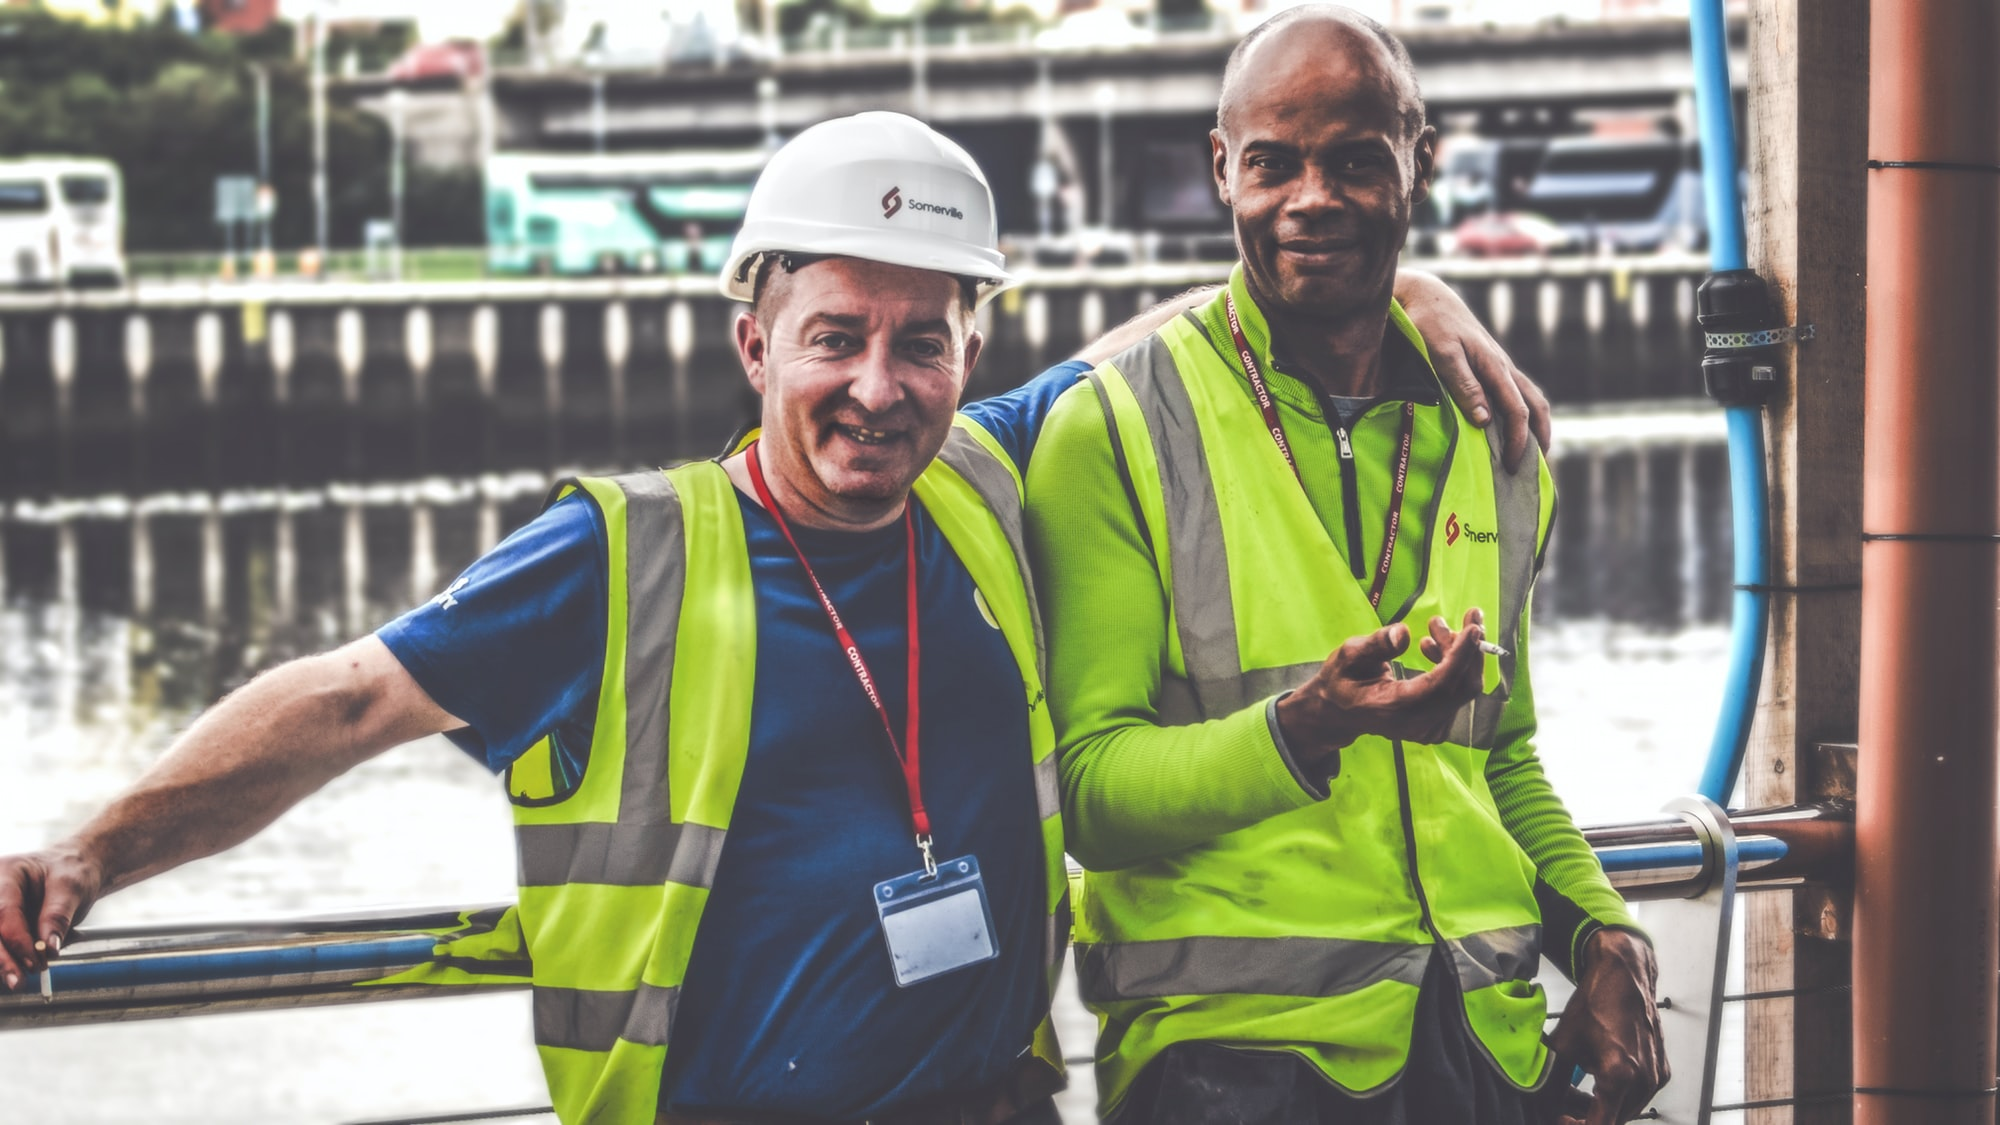 How to Build Strong Construction Communication Skills (Tips, Resources, Tools)